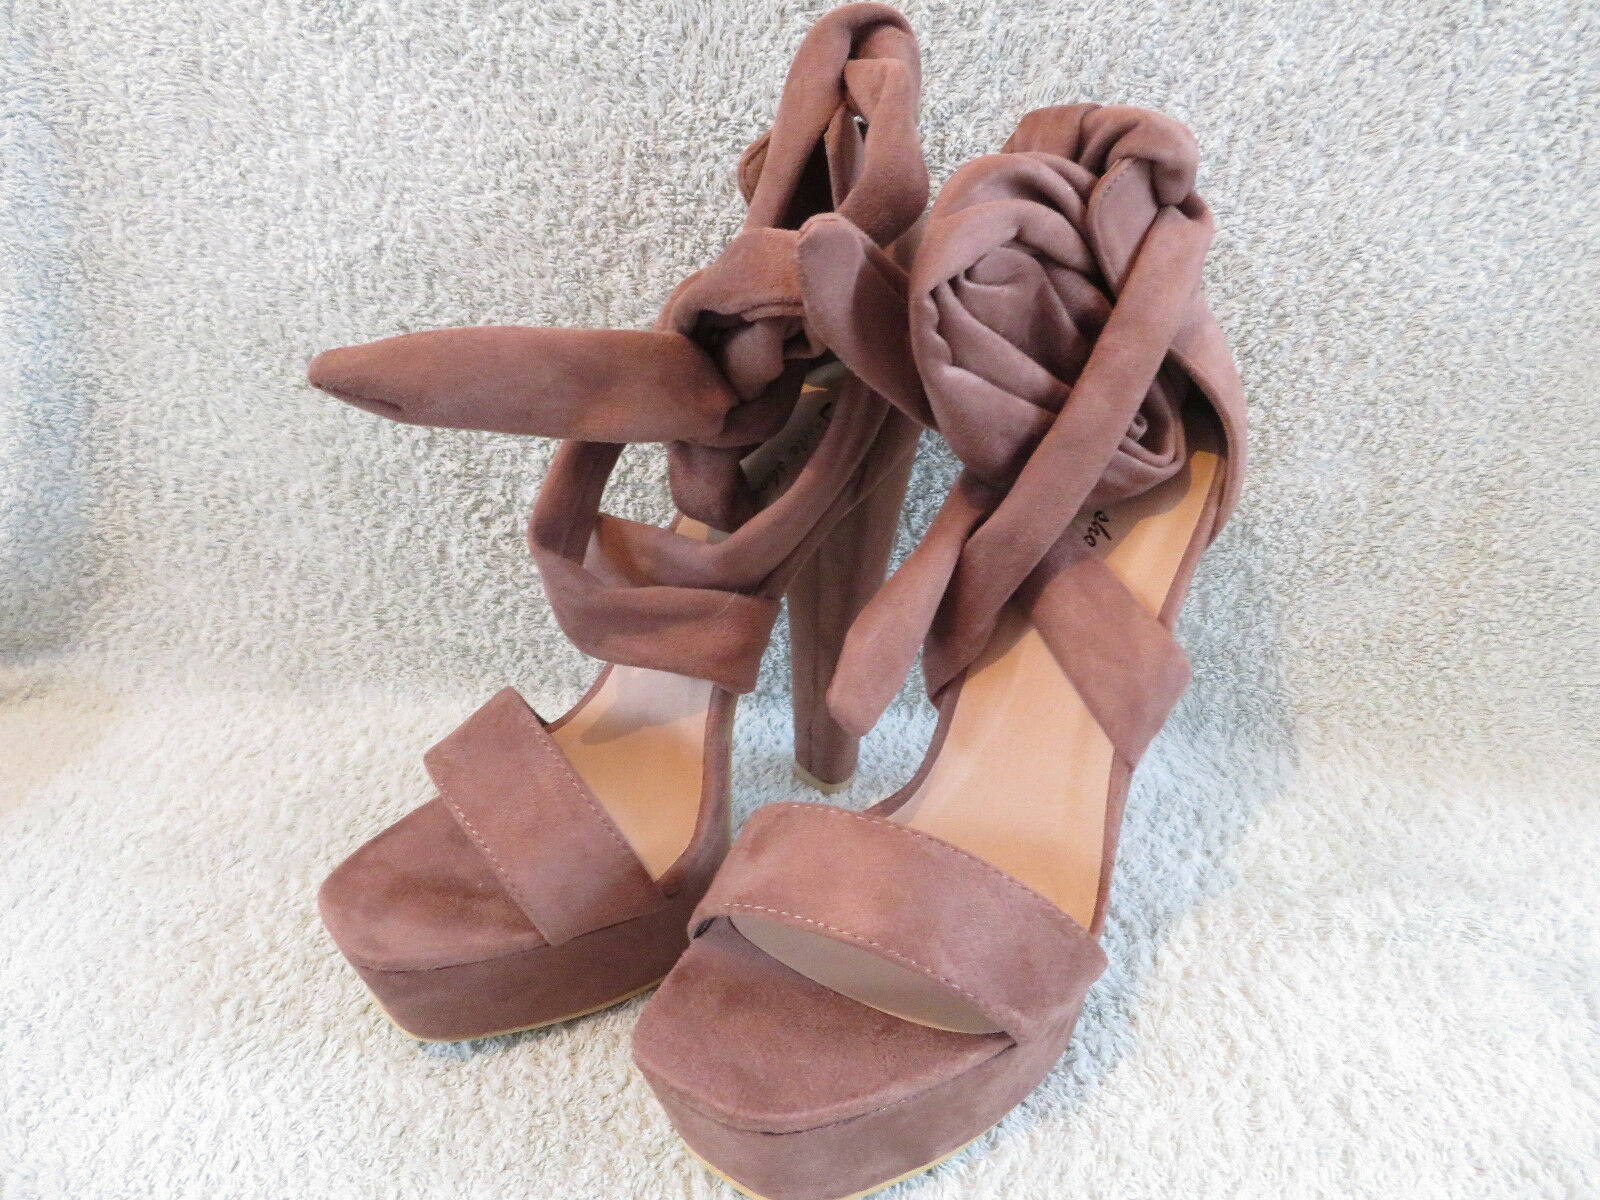 LADIES STYLE WEDGE SEXY STRAPPY HIGH HEELED SANDAL SIZE 7 NEW IN BOX